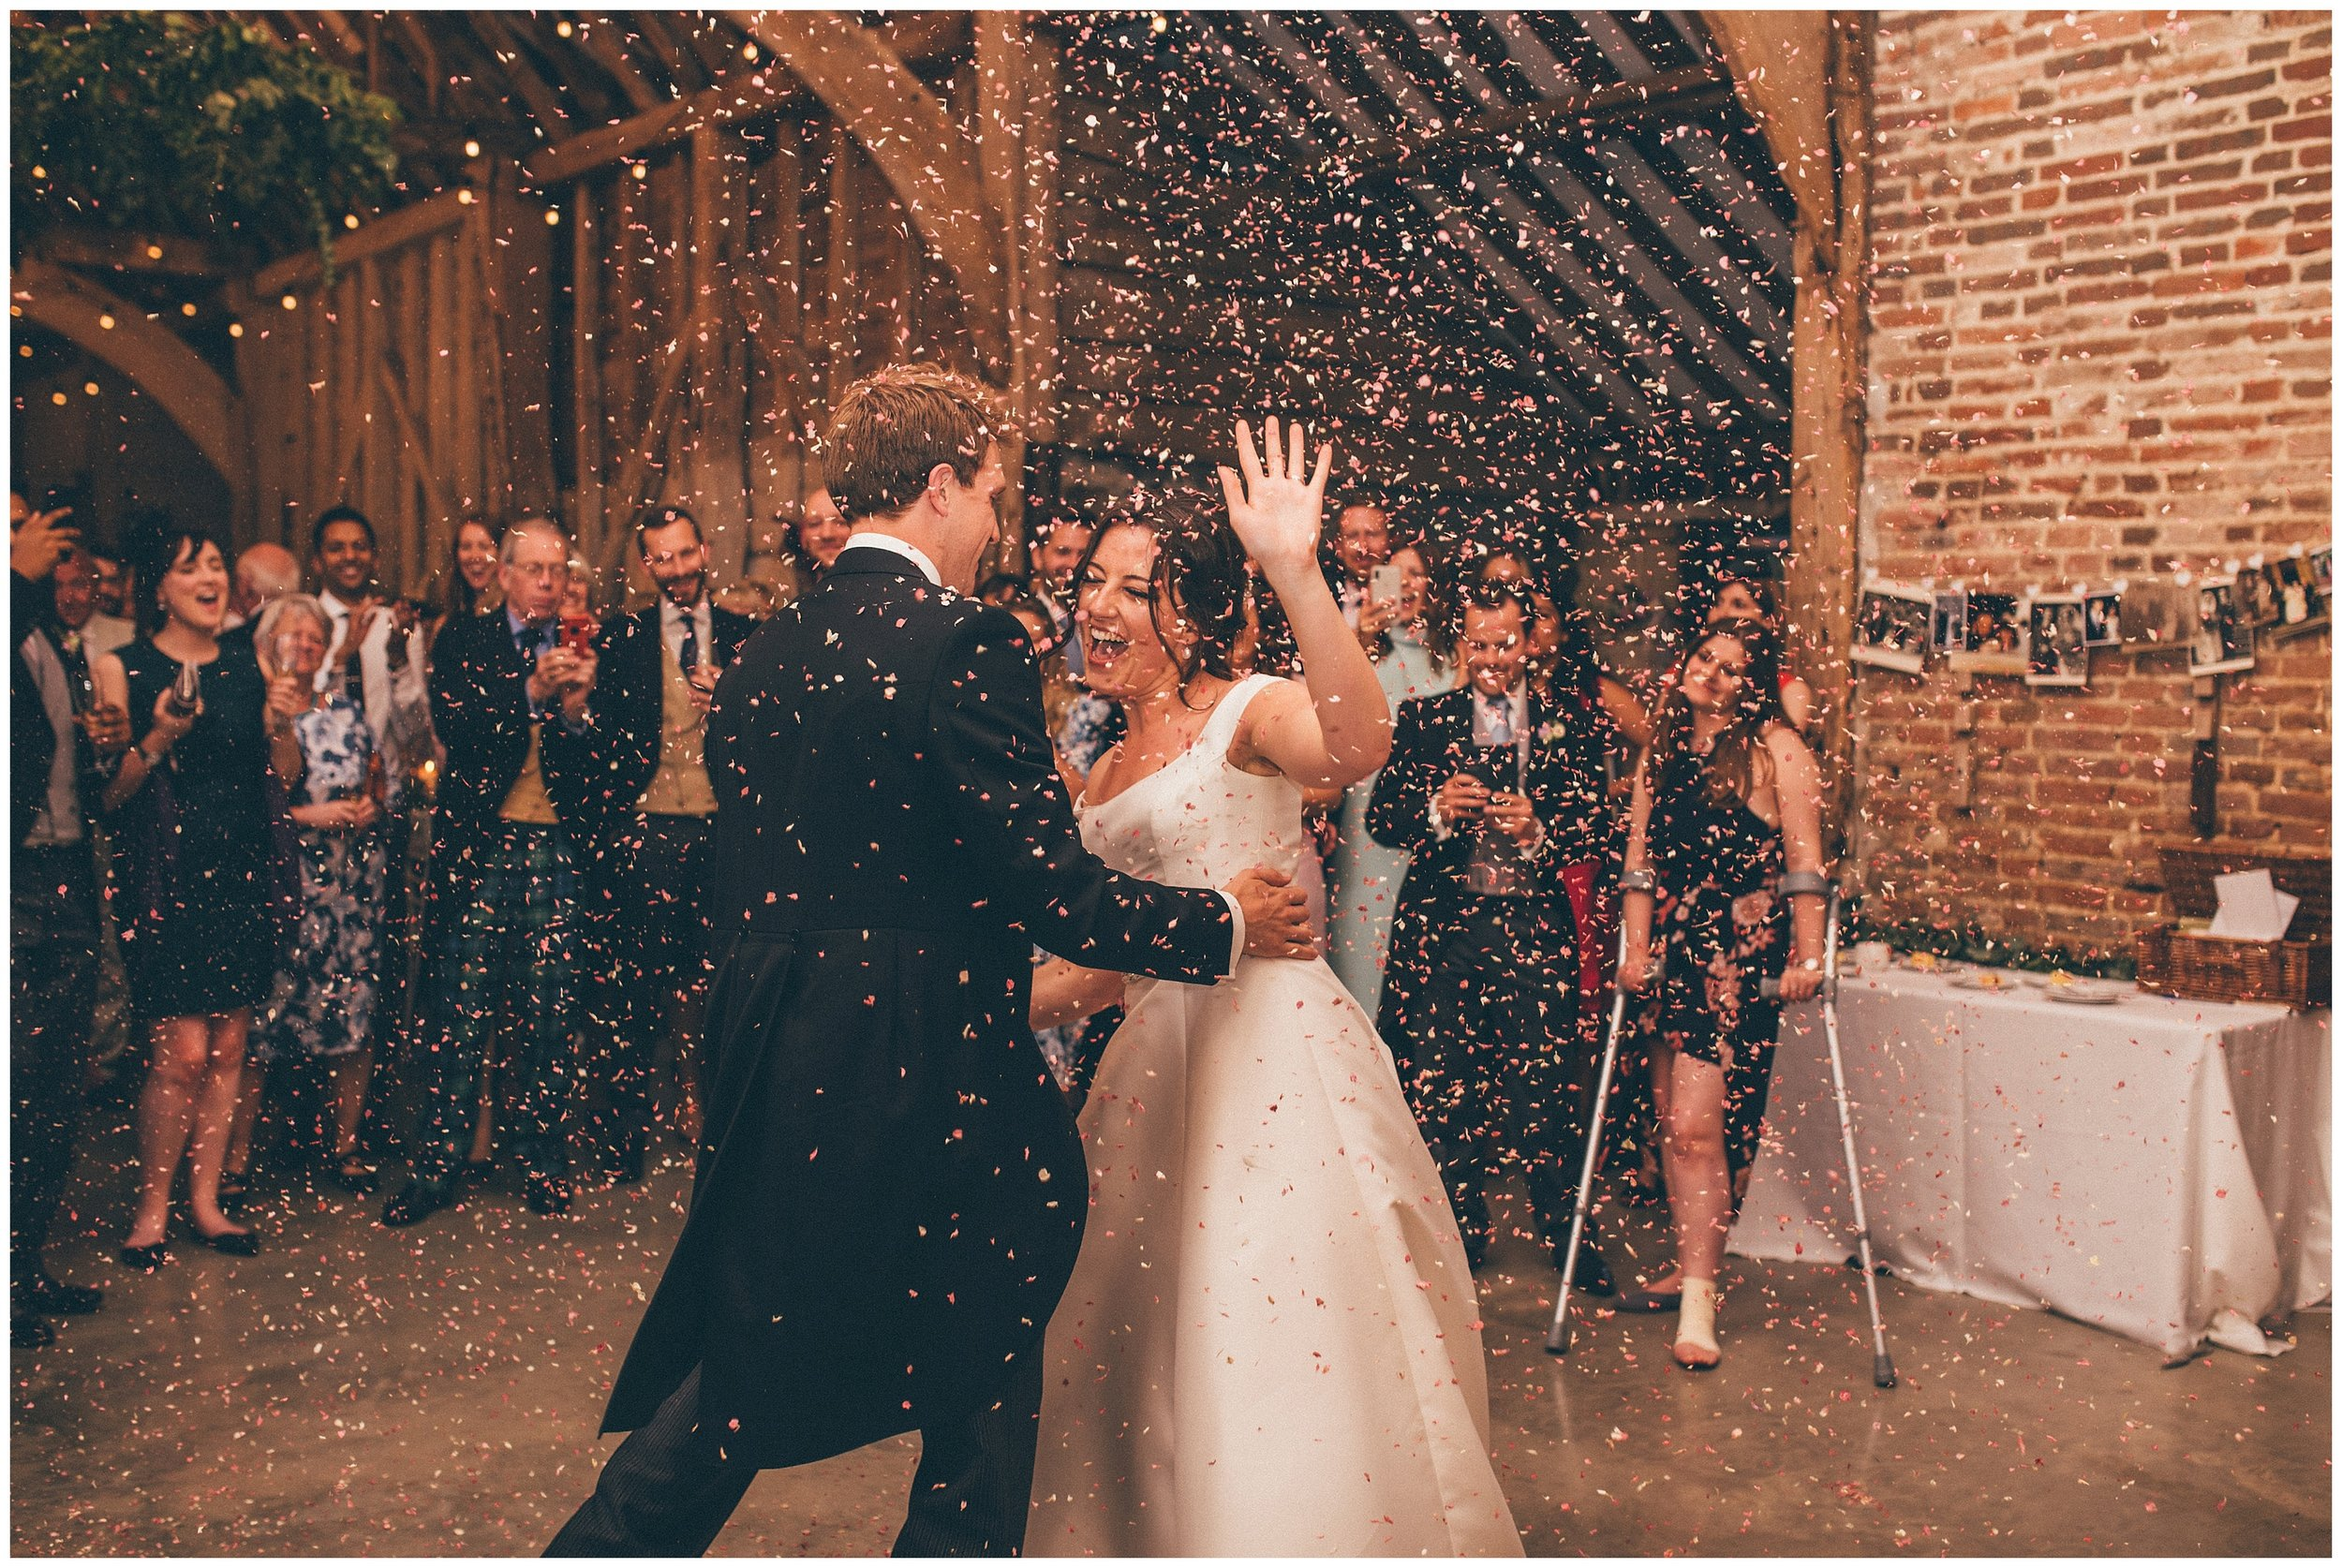 Confetti canon during the First Dance at Henham Park wedding barns in Southwold.